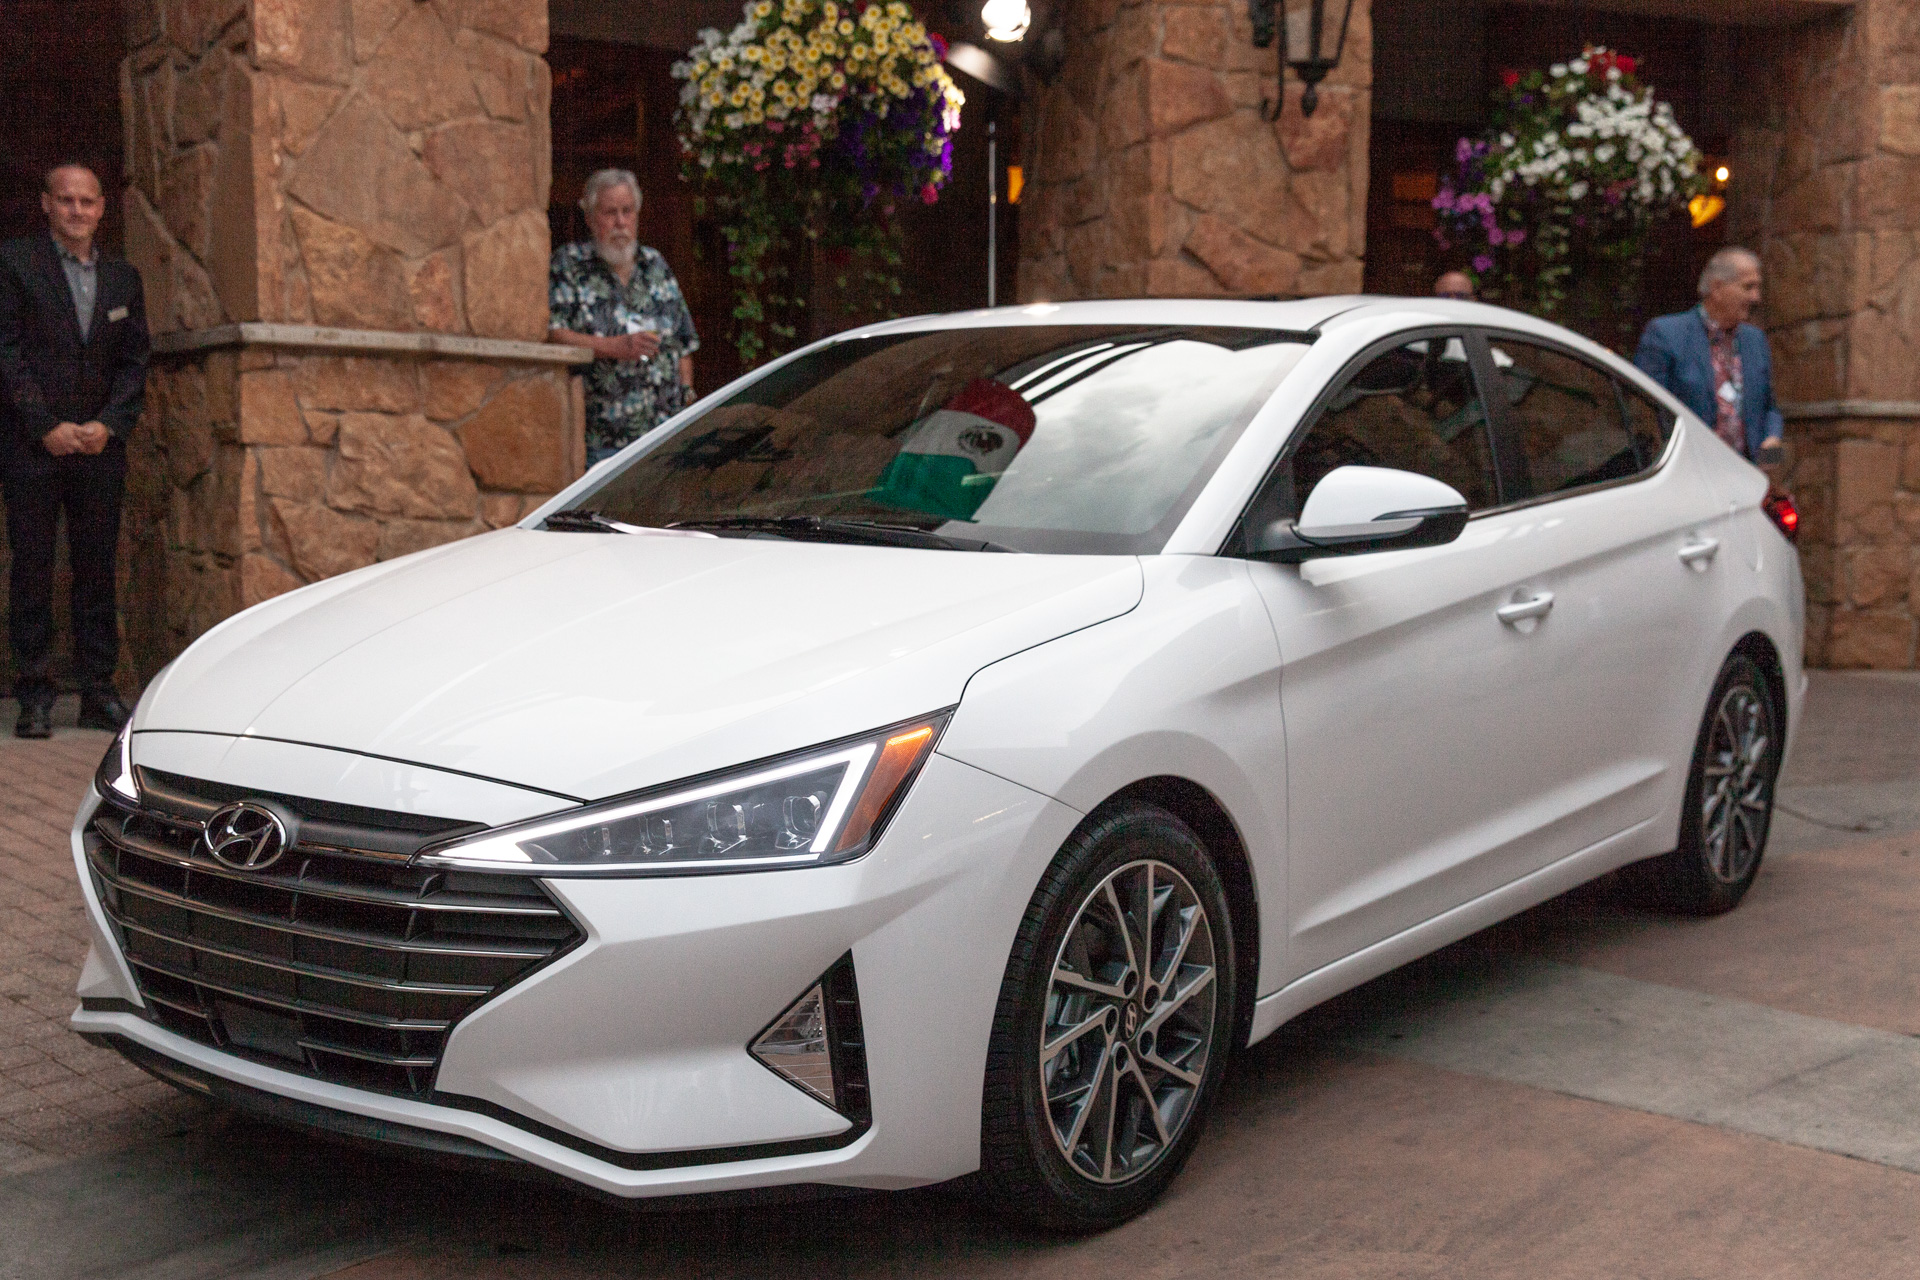 48 New 2019 Hyundai Elantra Sedan Reviews